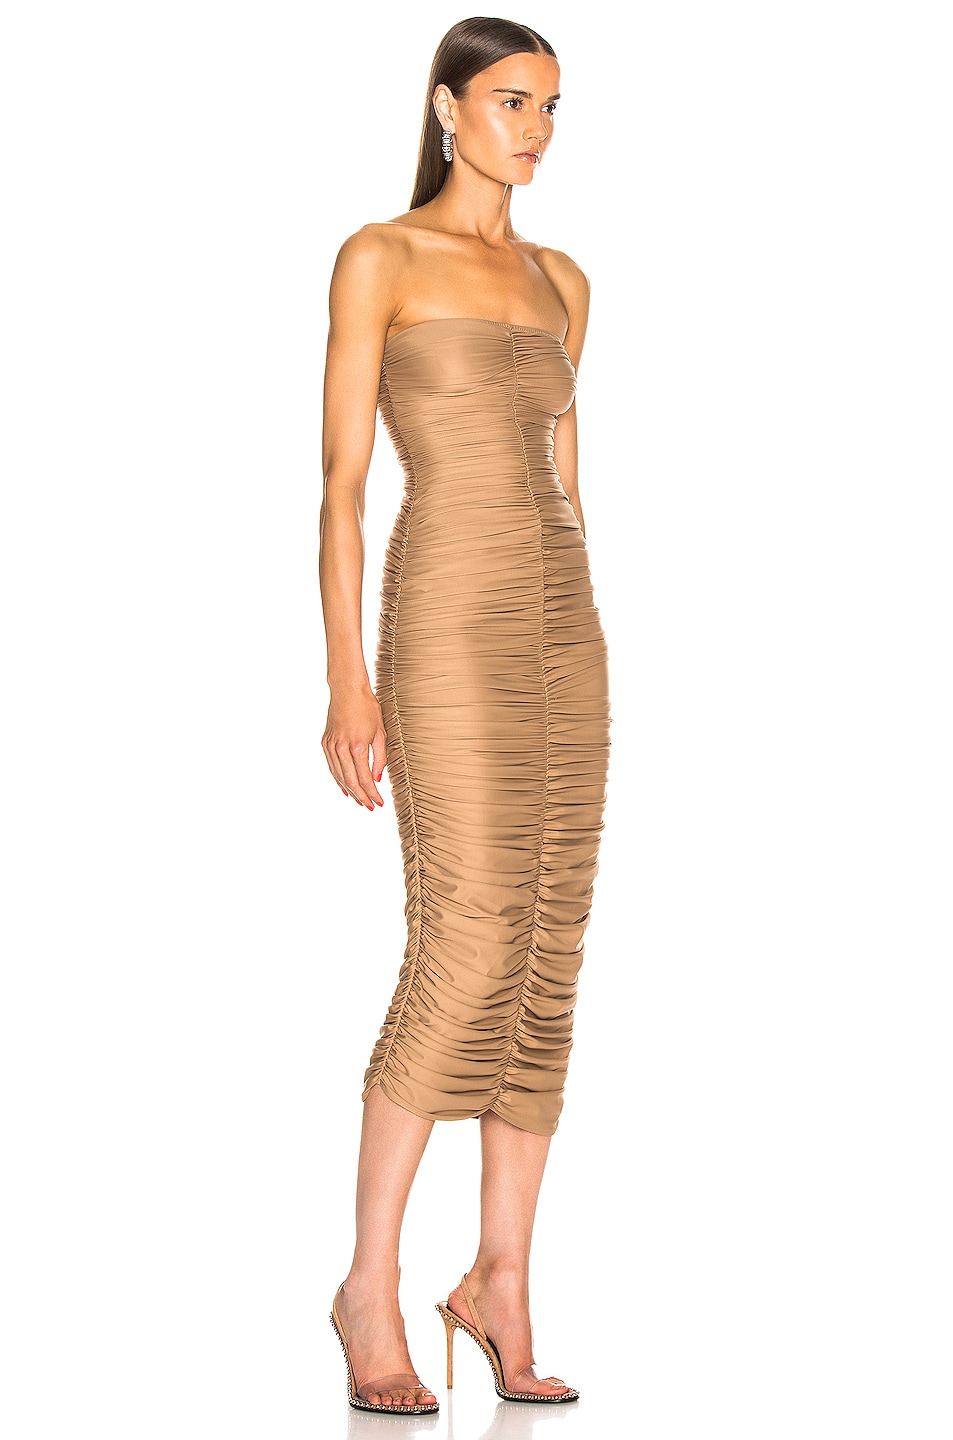 Image 2 of Norma Kamali Slinky Dress for FWRD in Suntan